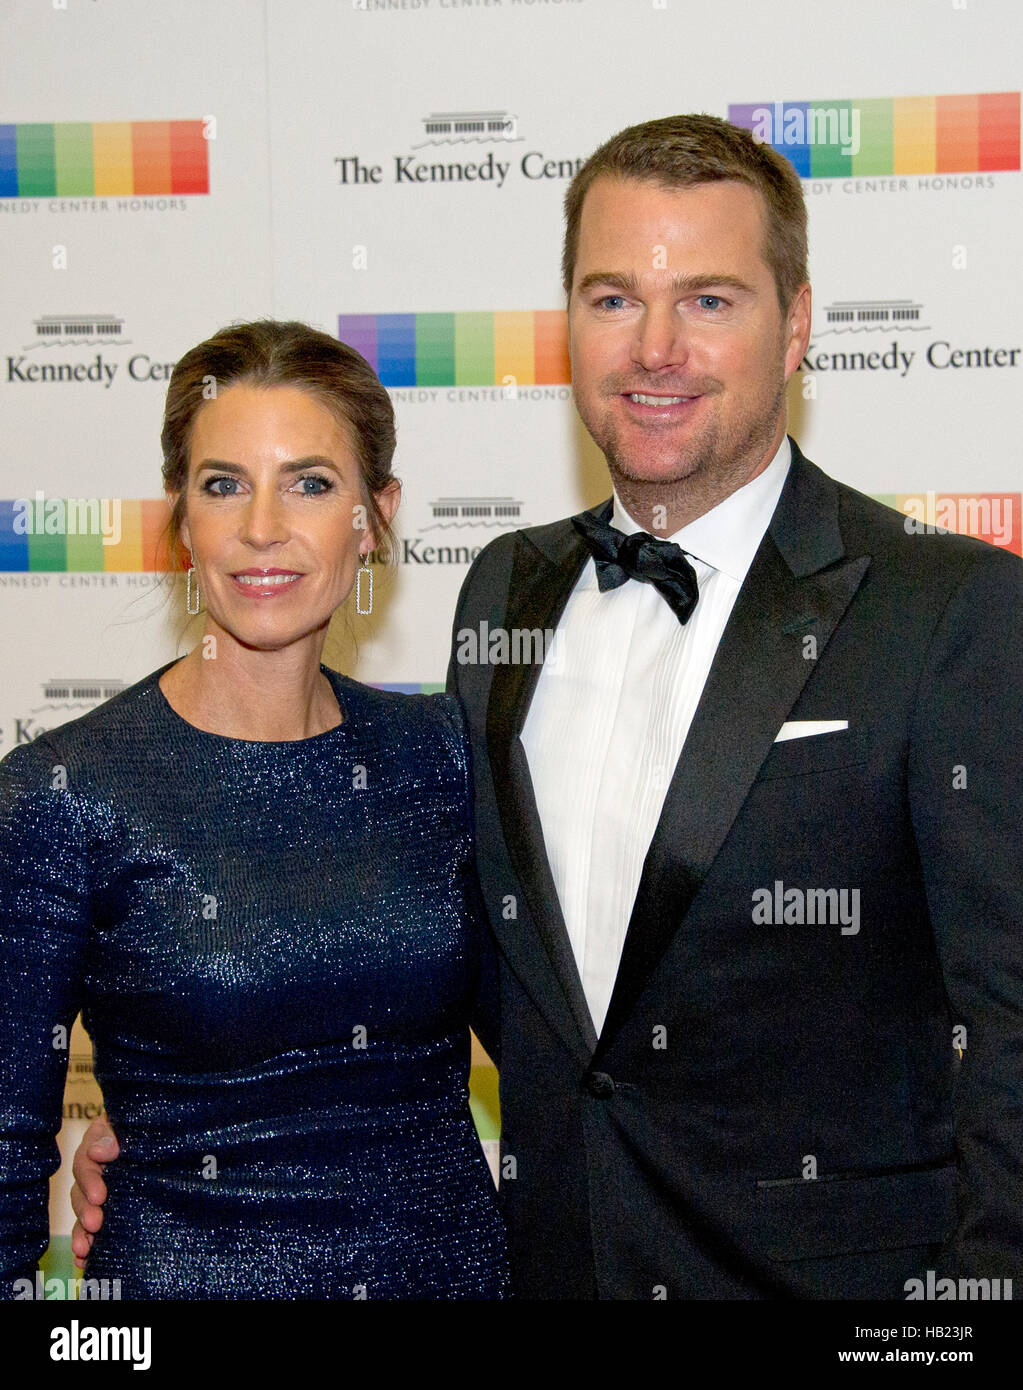 Washington DC, USA. 3rd Dec, 2016. Chris O'Donnell and his wife, Caroline Fentress, arrive for the formal Artist's - Stock Image